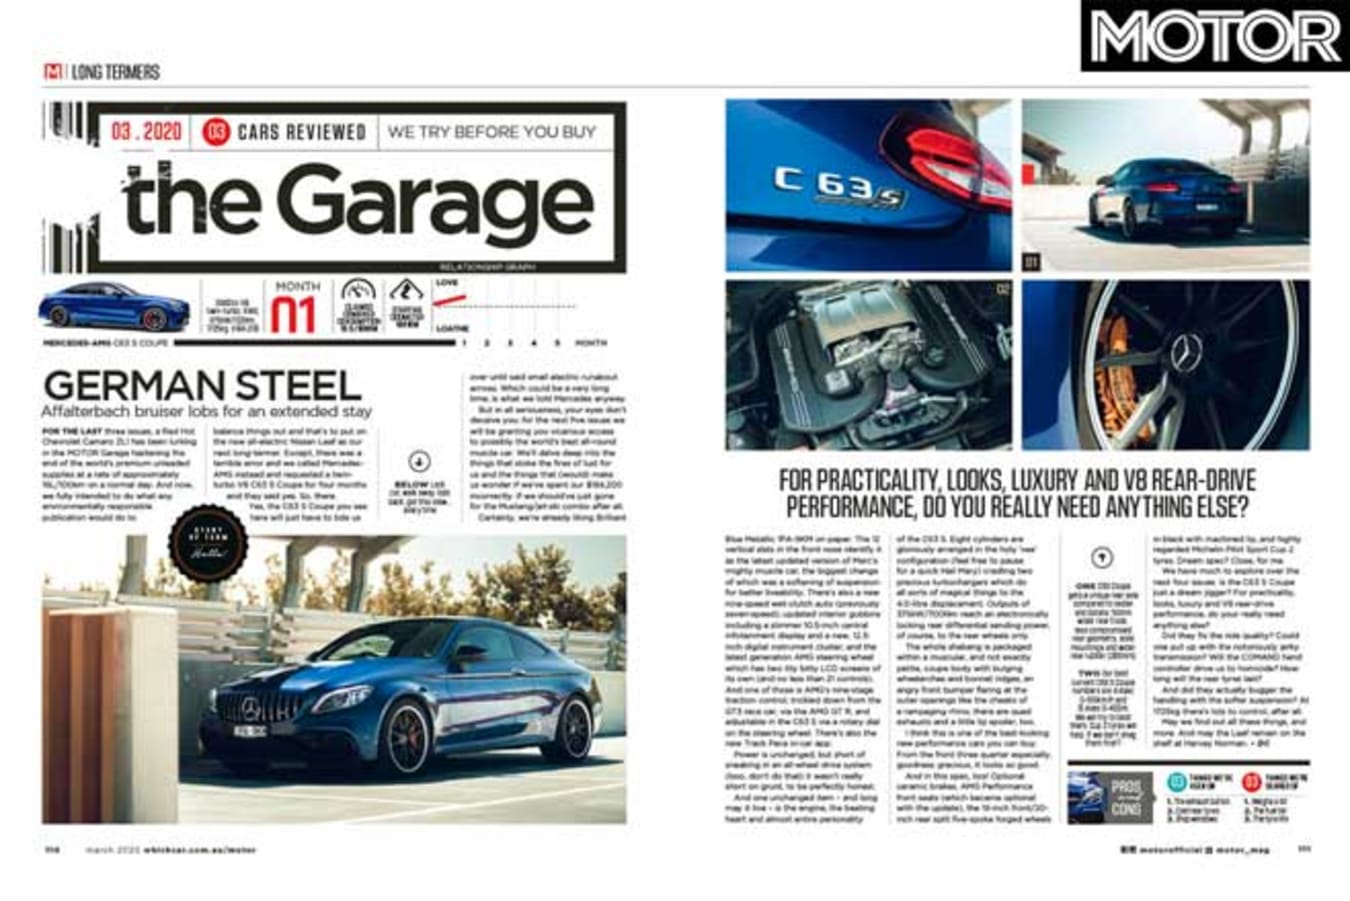 MOTOR Magazine March 2020 Issue Long Term Review Jpg